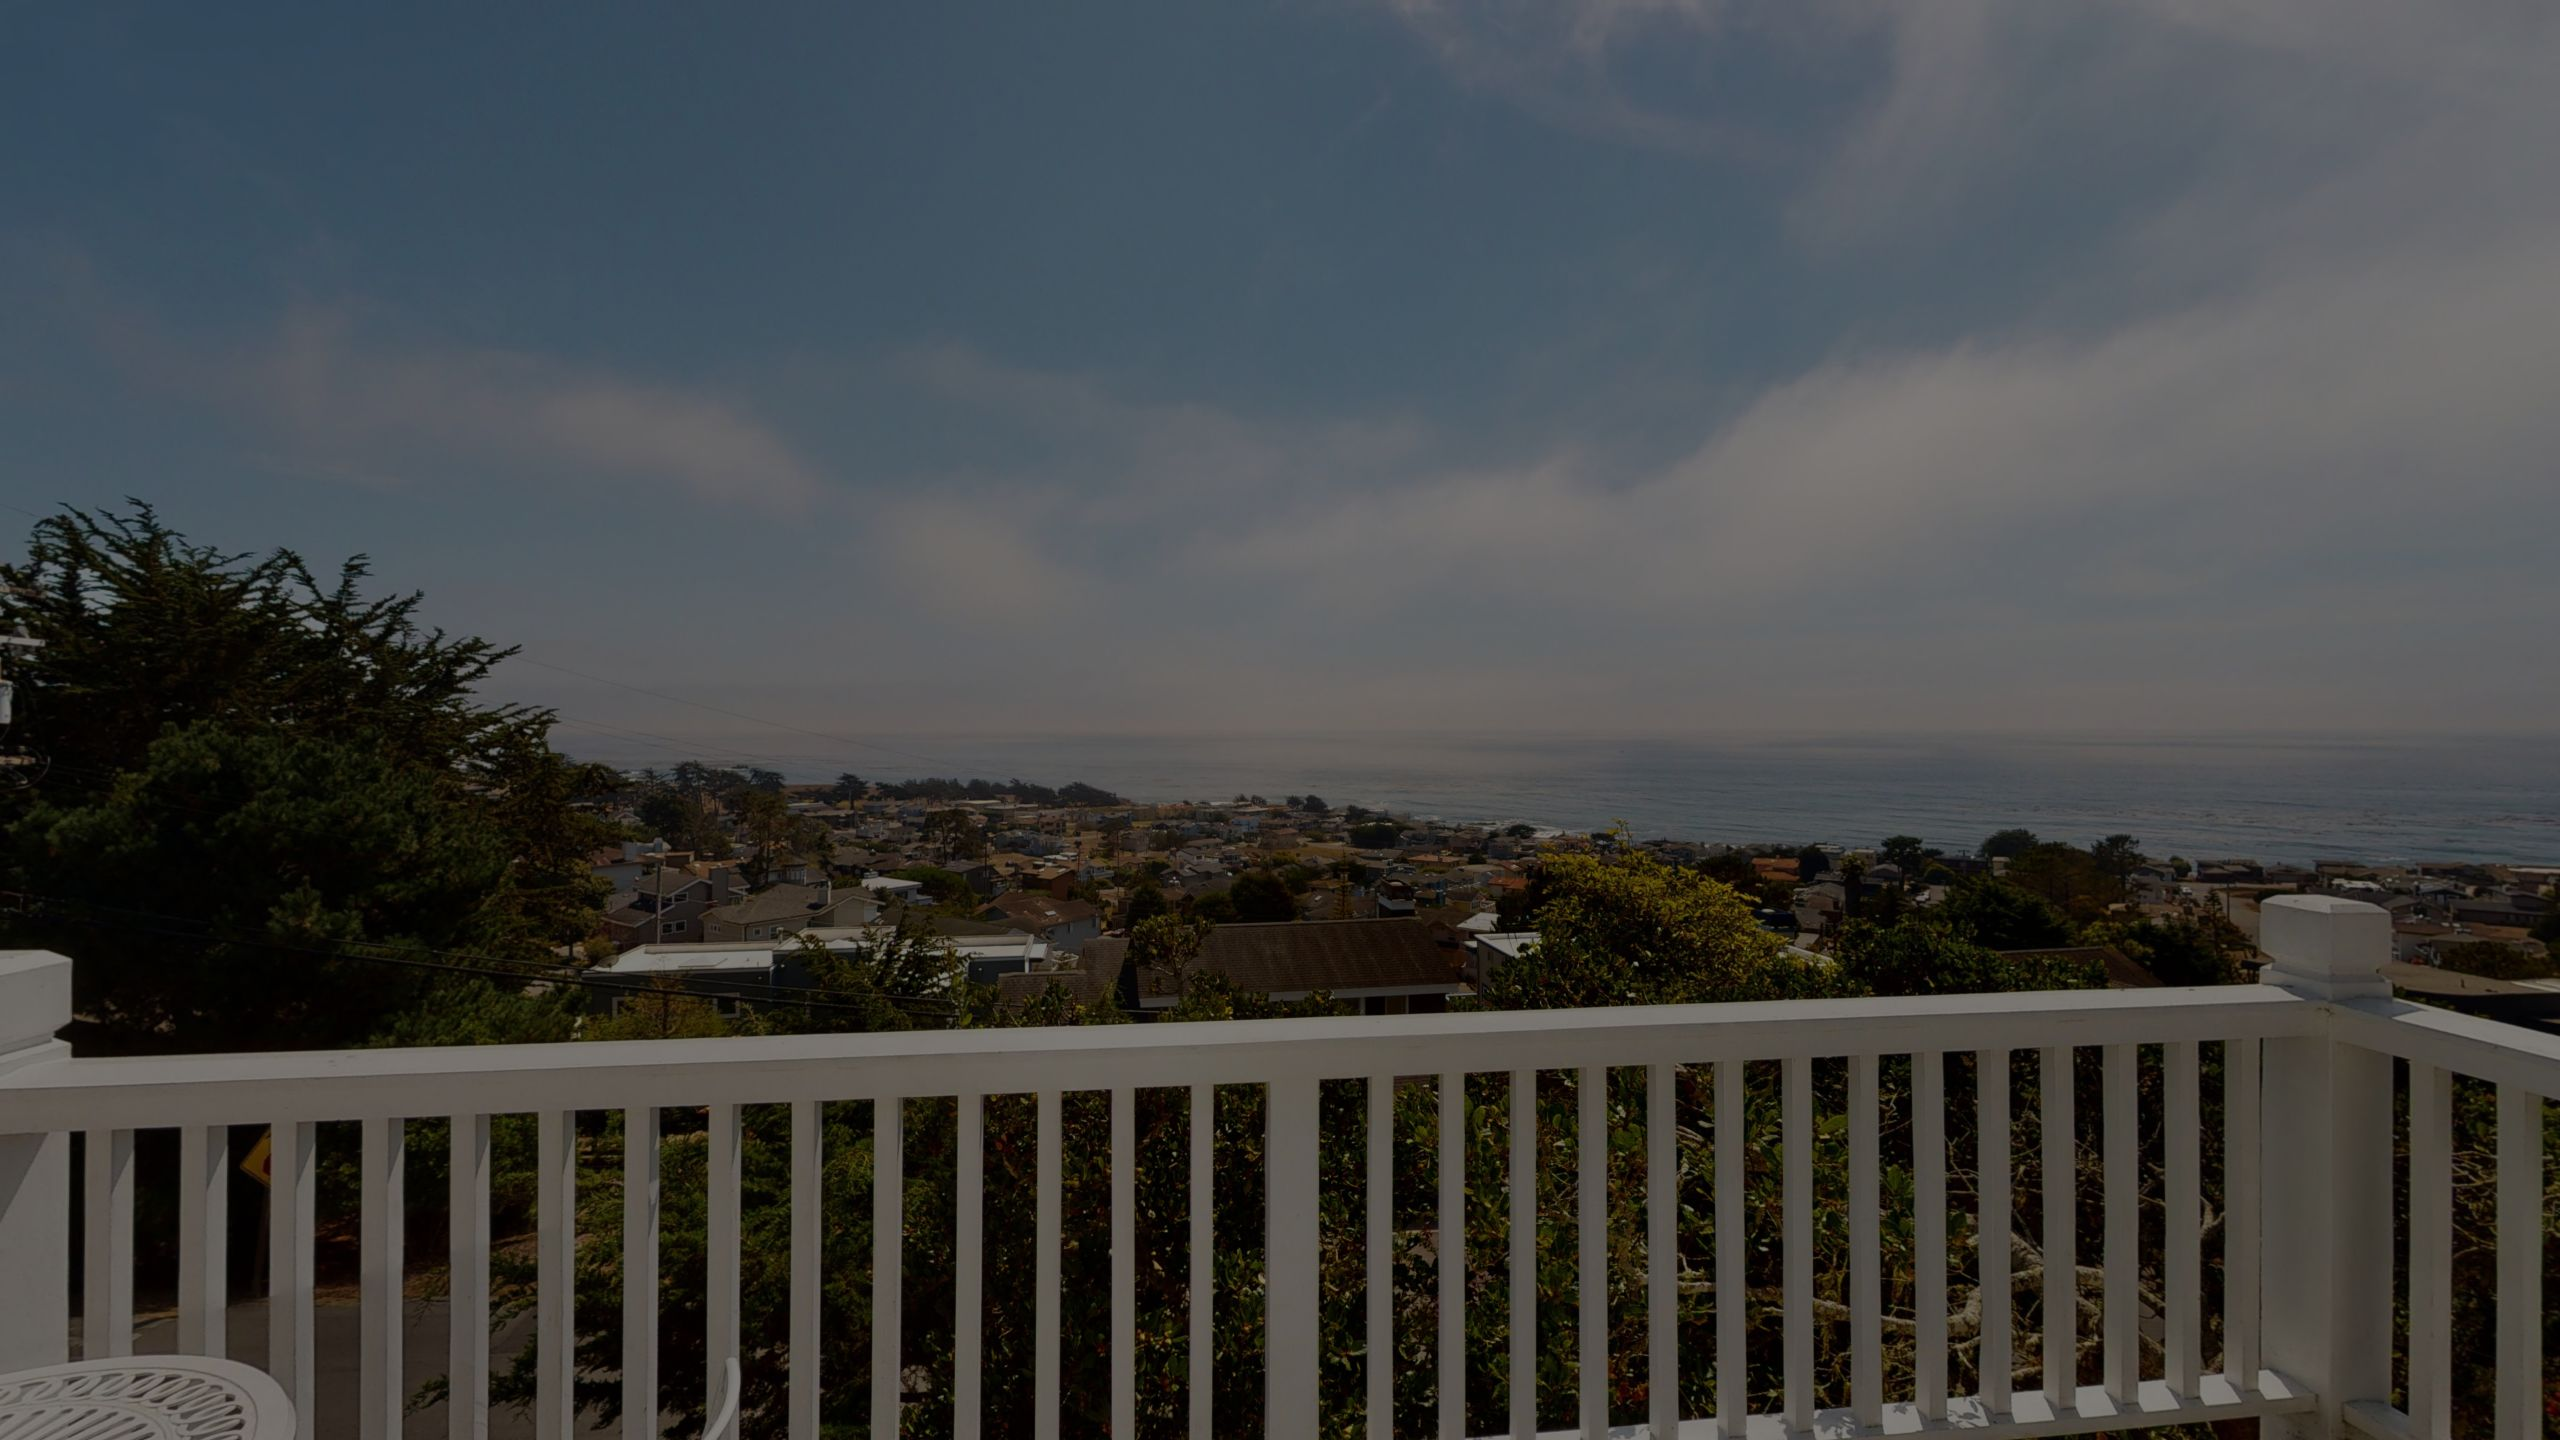 Expansive Views Over Marine Terrace